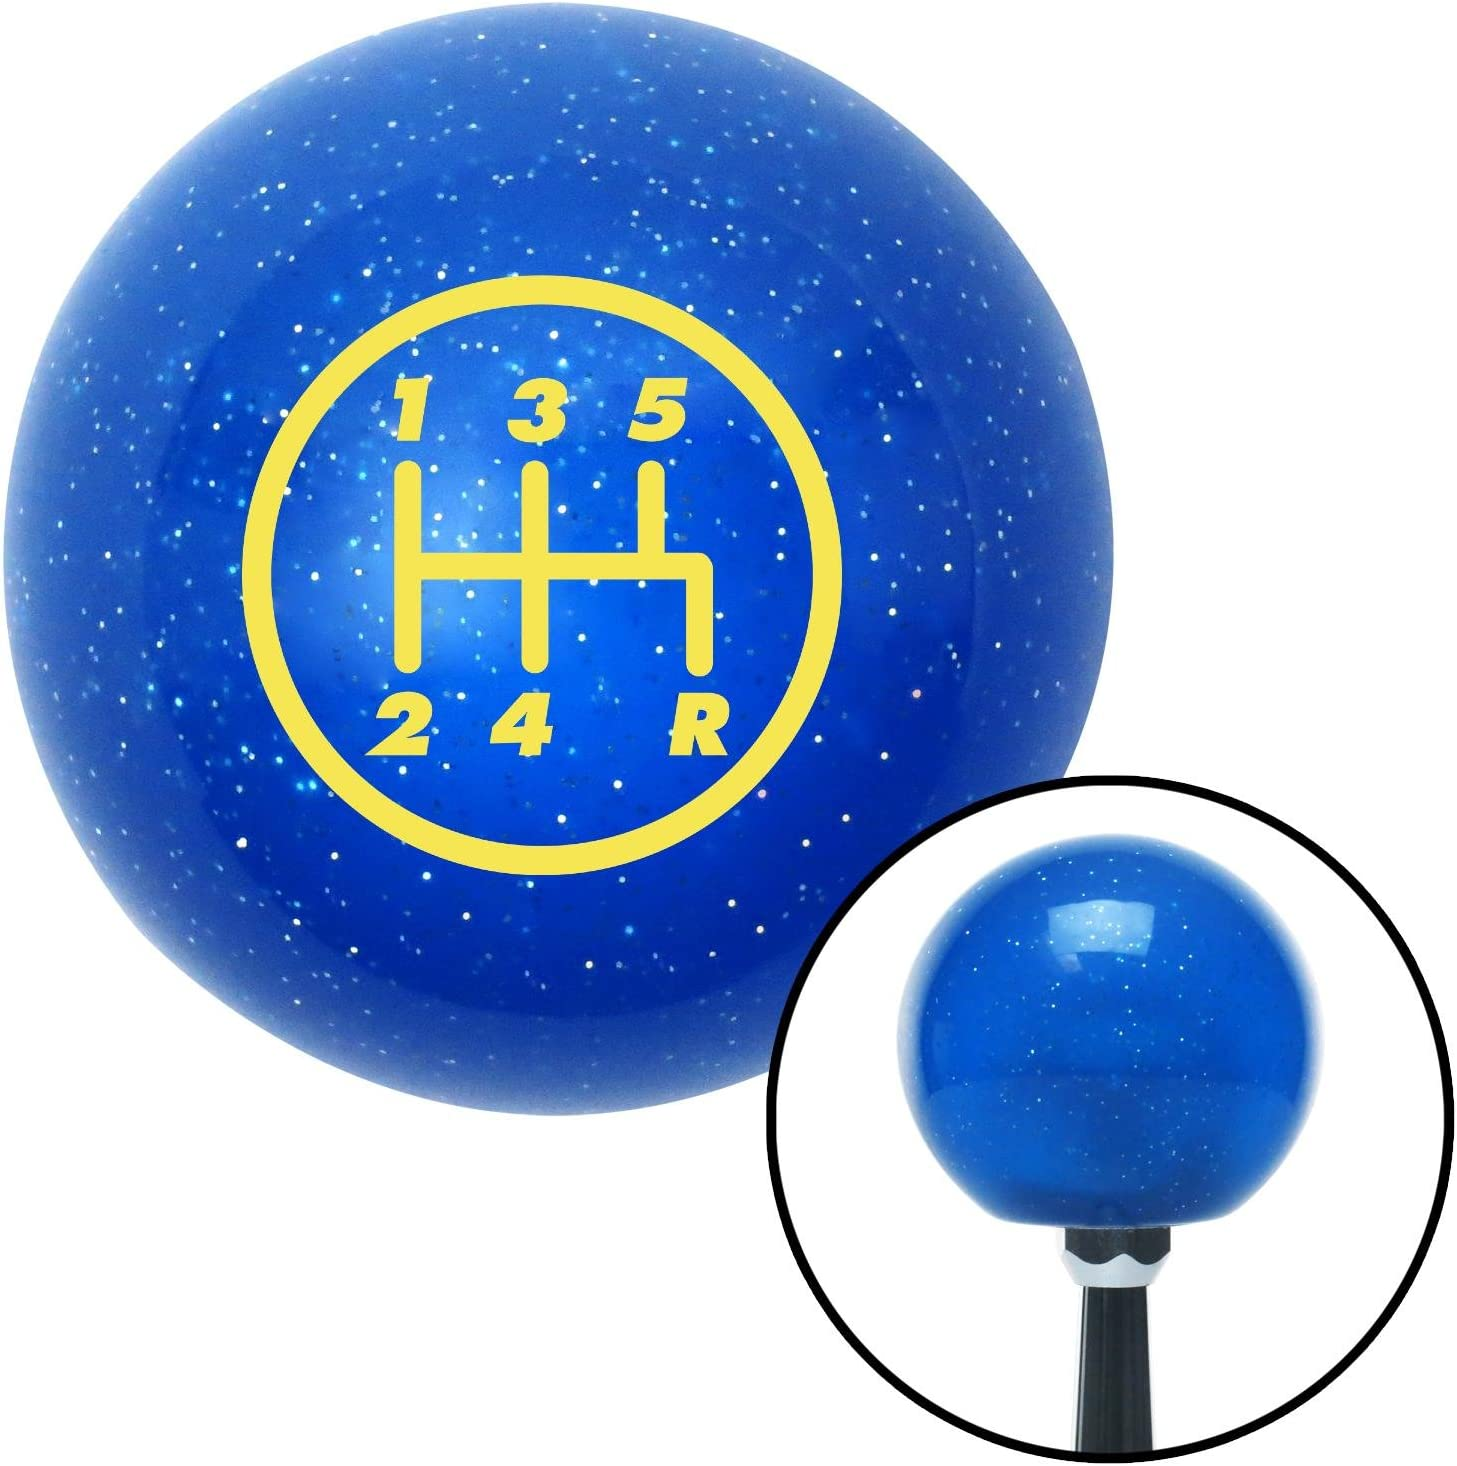 American Shifter 19667 Blue Metal Flake Shift Knob with 16mm x 1.5 Insert Yellow 5 Speed Shift Pattern - 5RDR